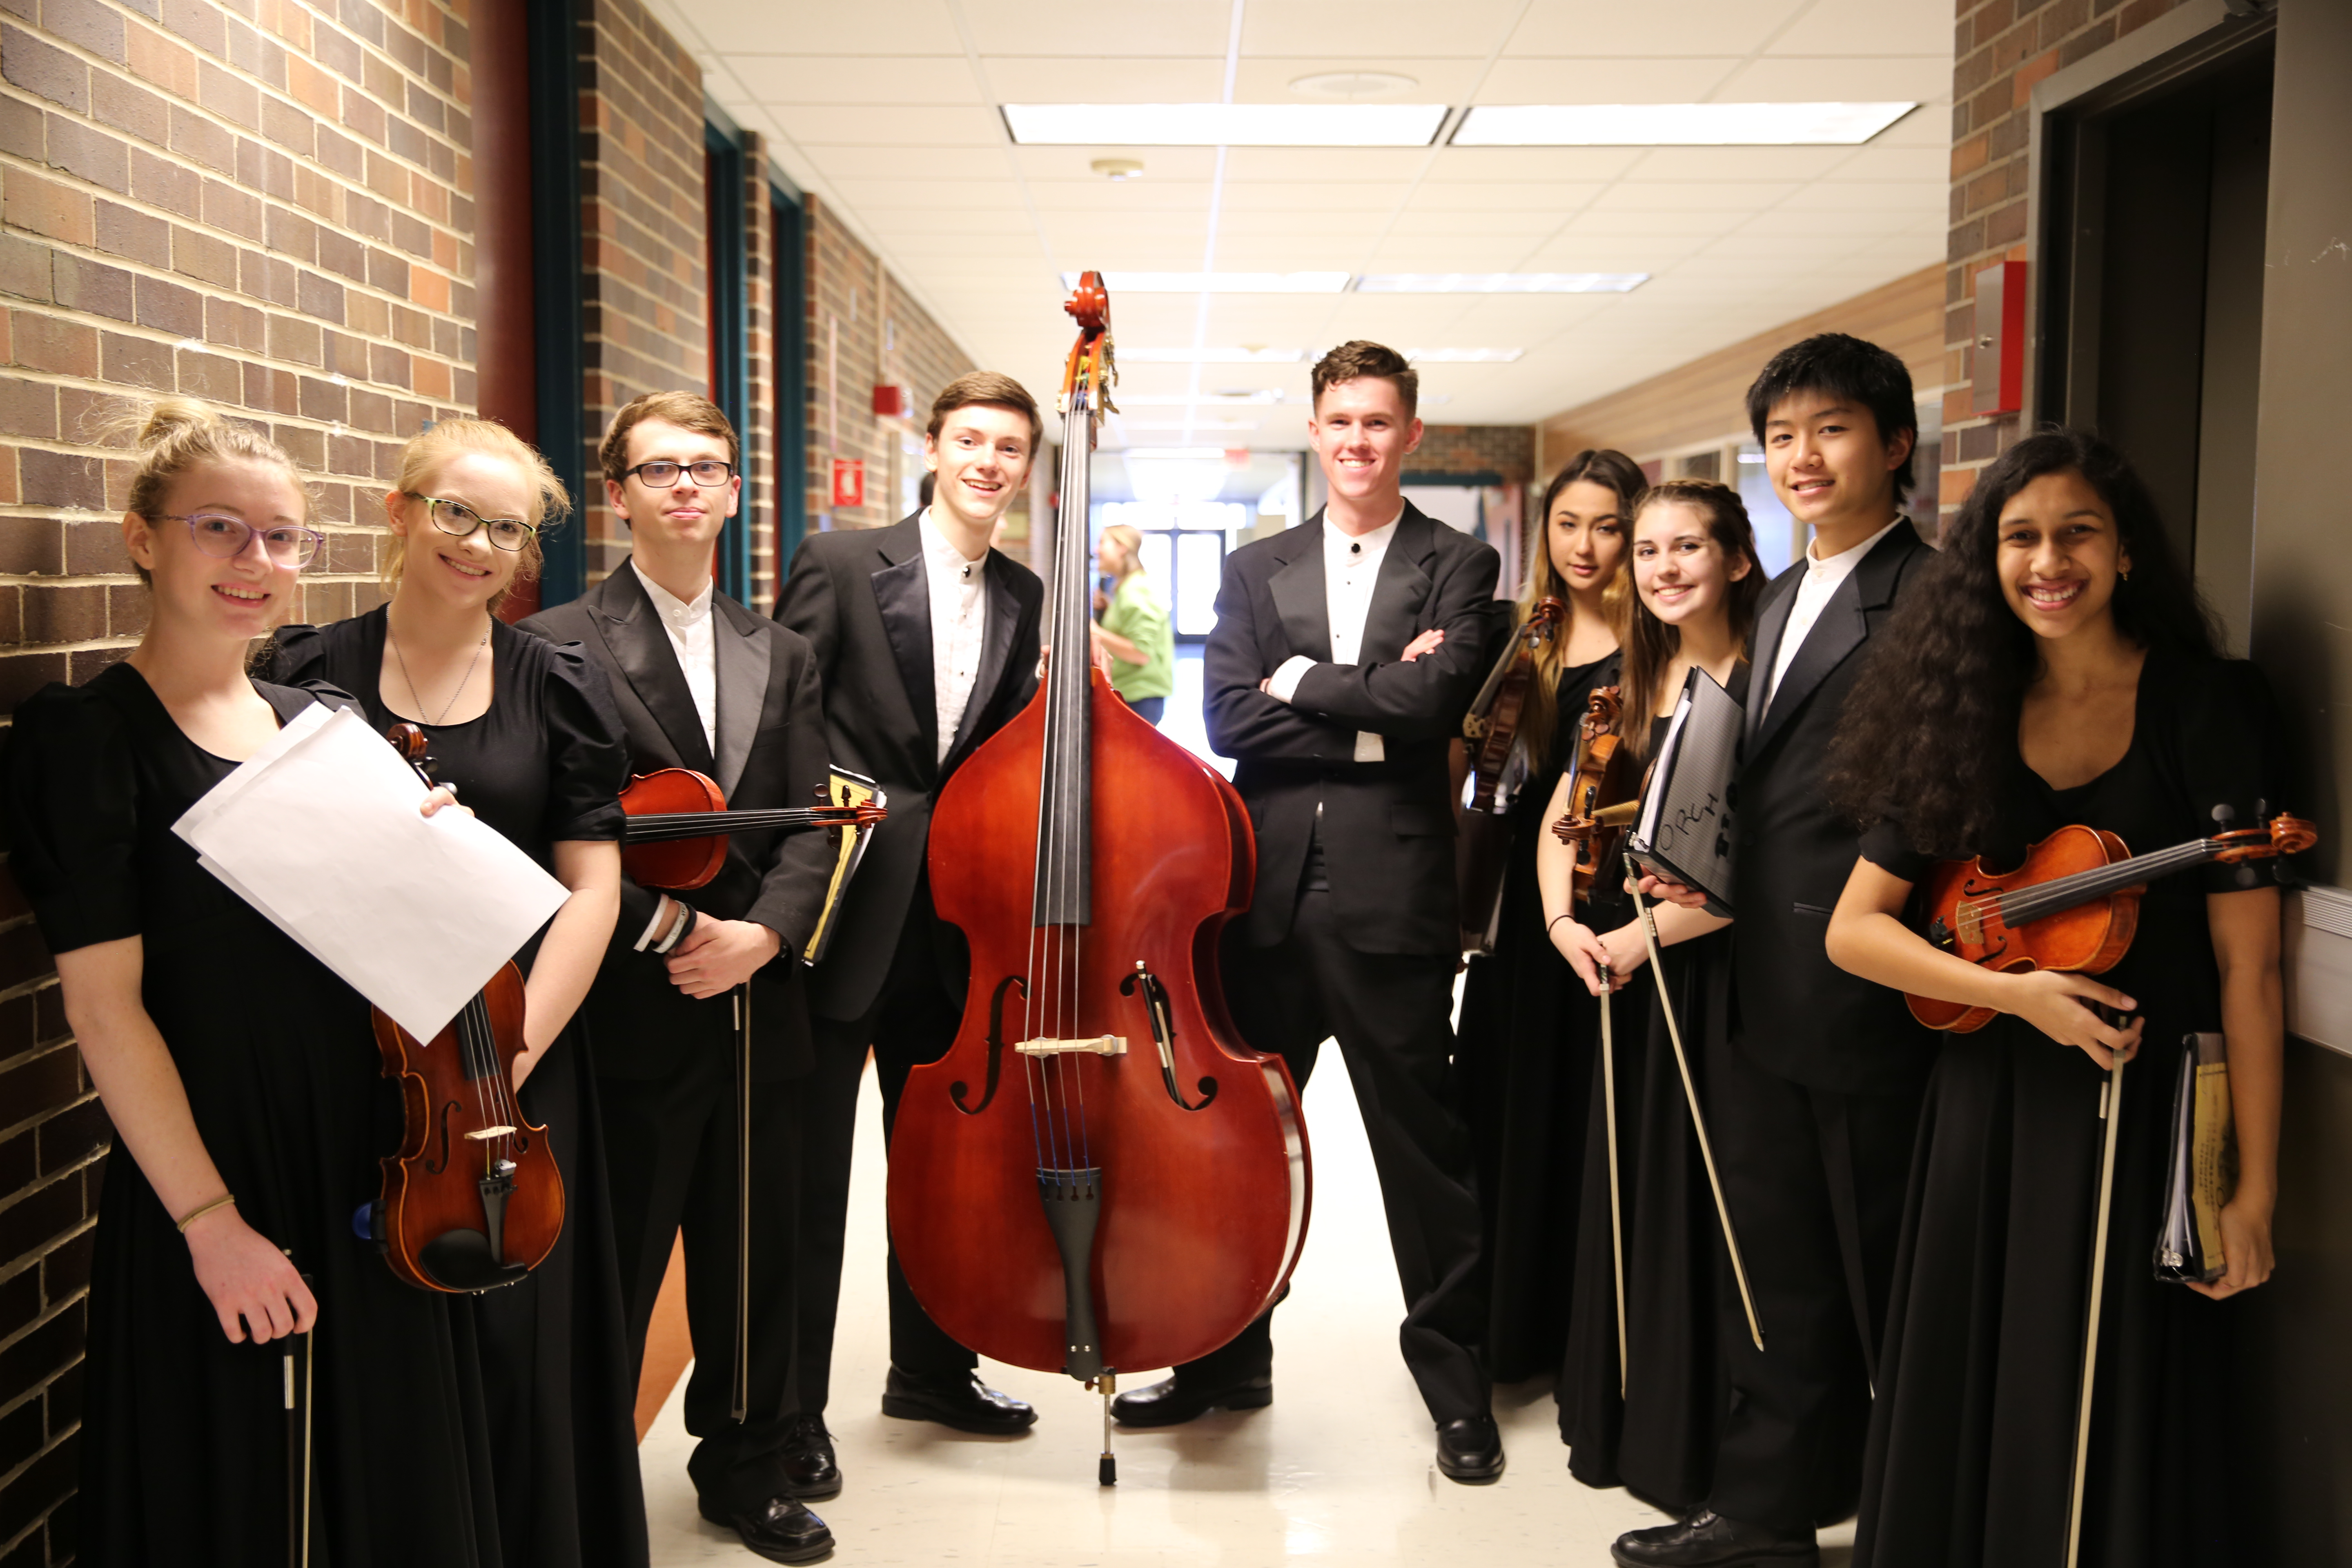 Penn High School Orchestra students